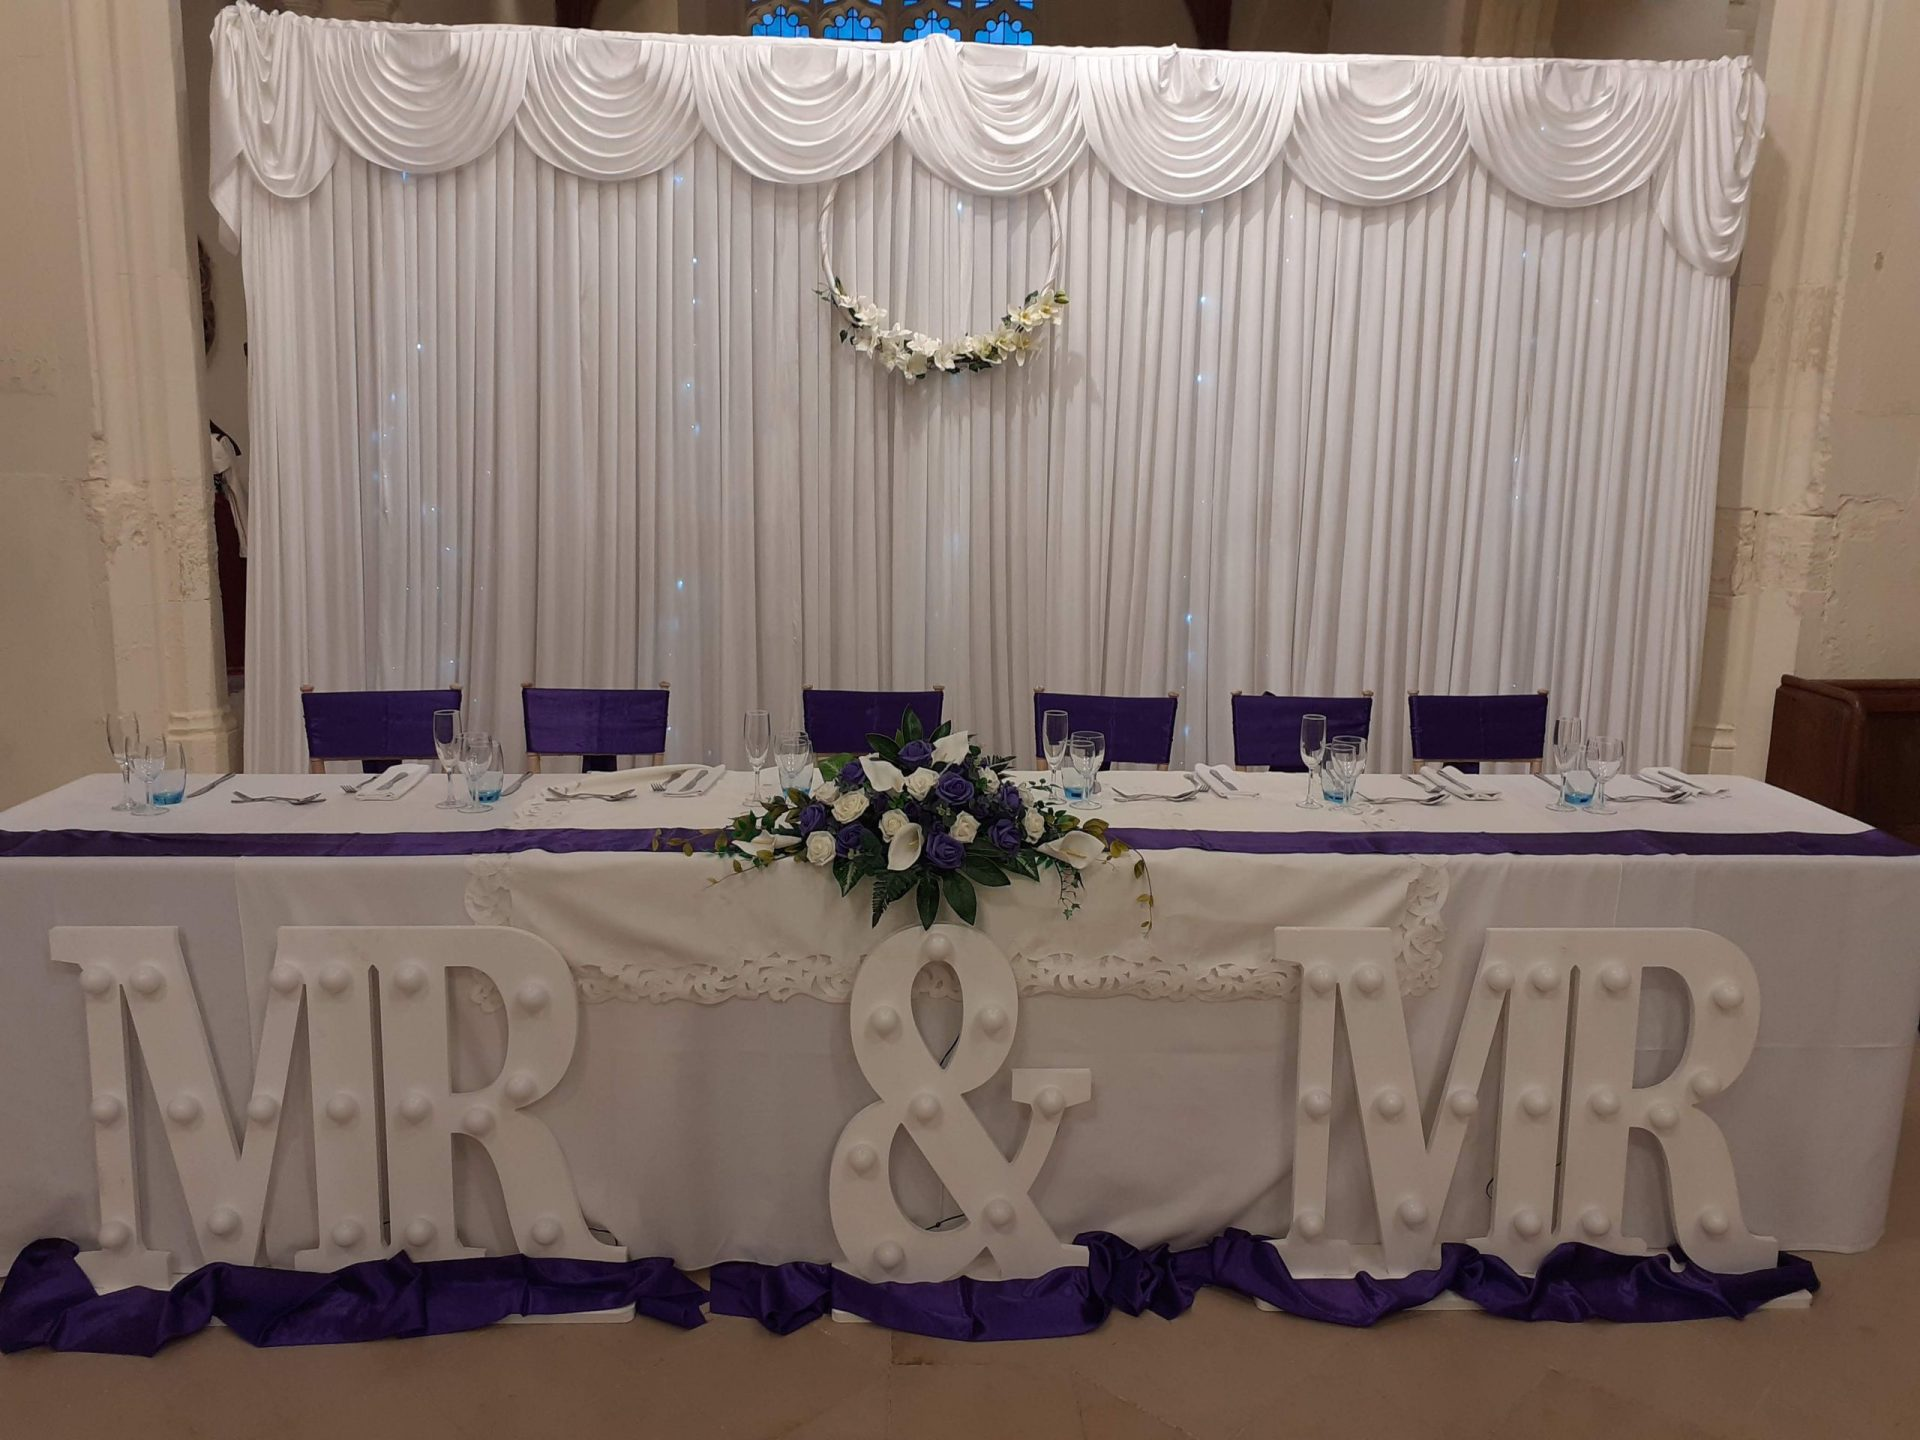 Mr & Mr Sign, Back drop with Purple Satin Theme